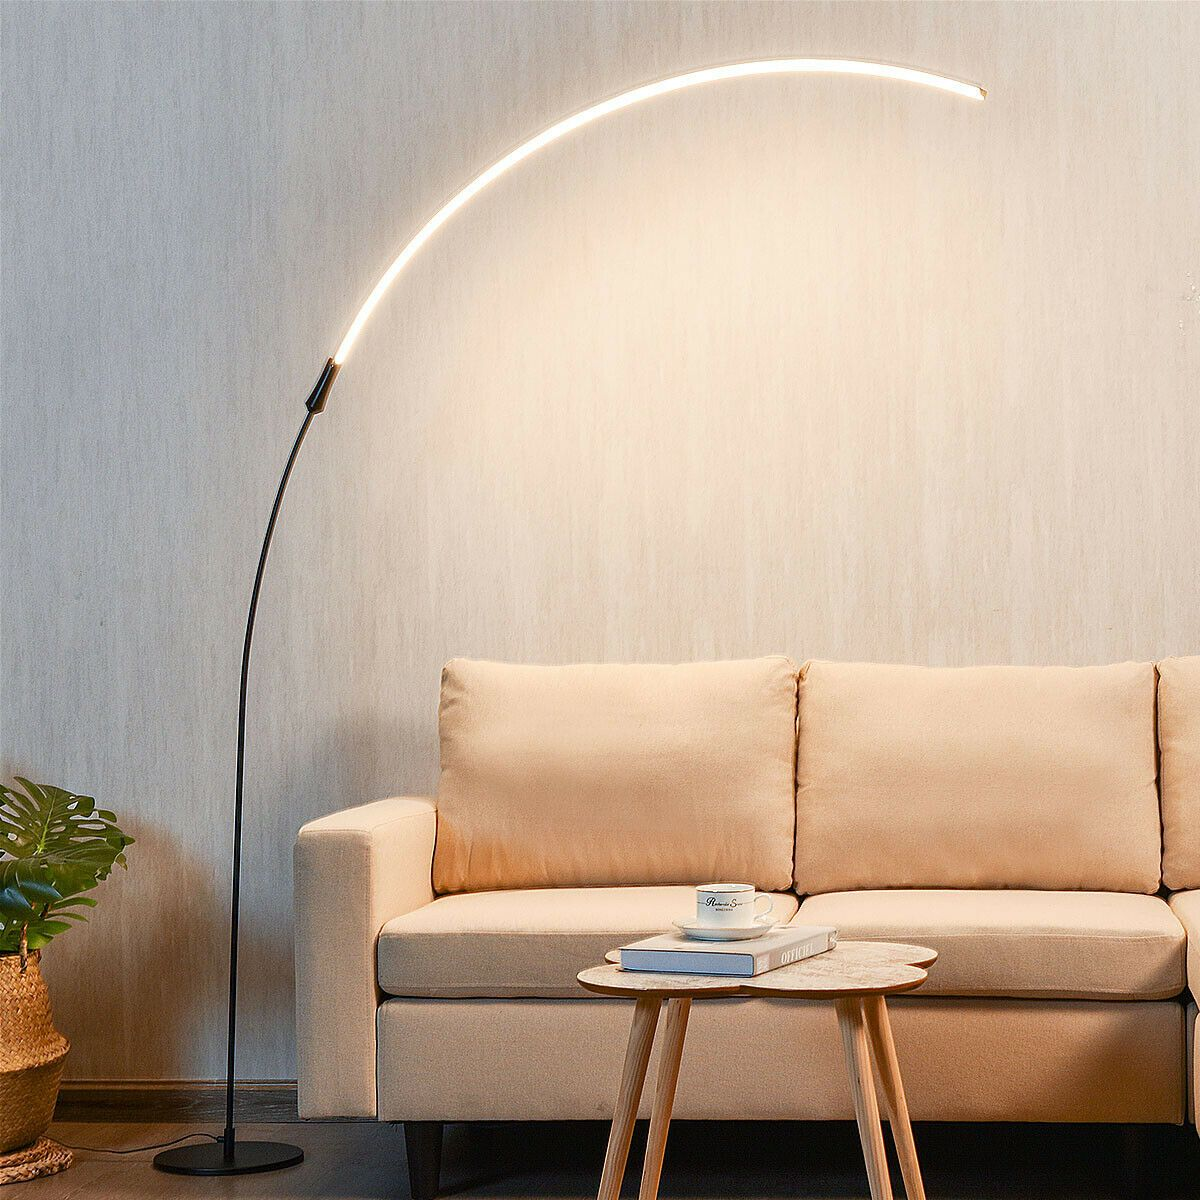 LED Arc Floor Lamp with 3 Brightness Levels in 2020 Arc